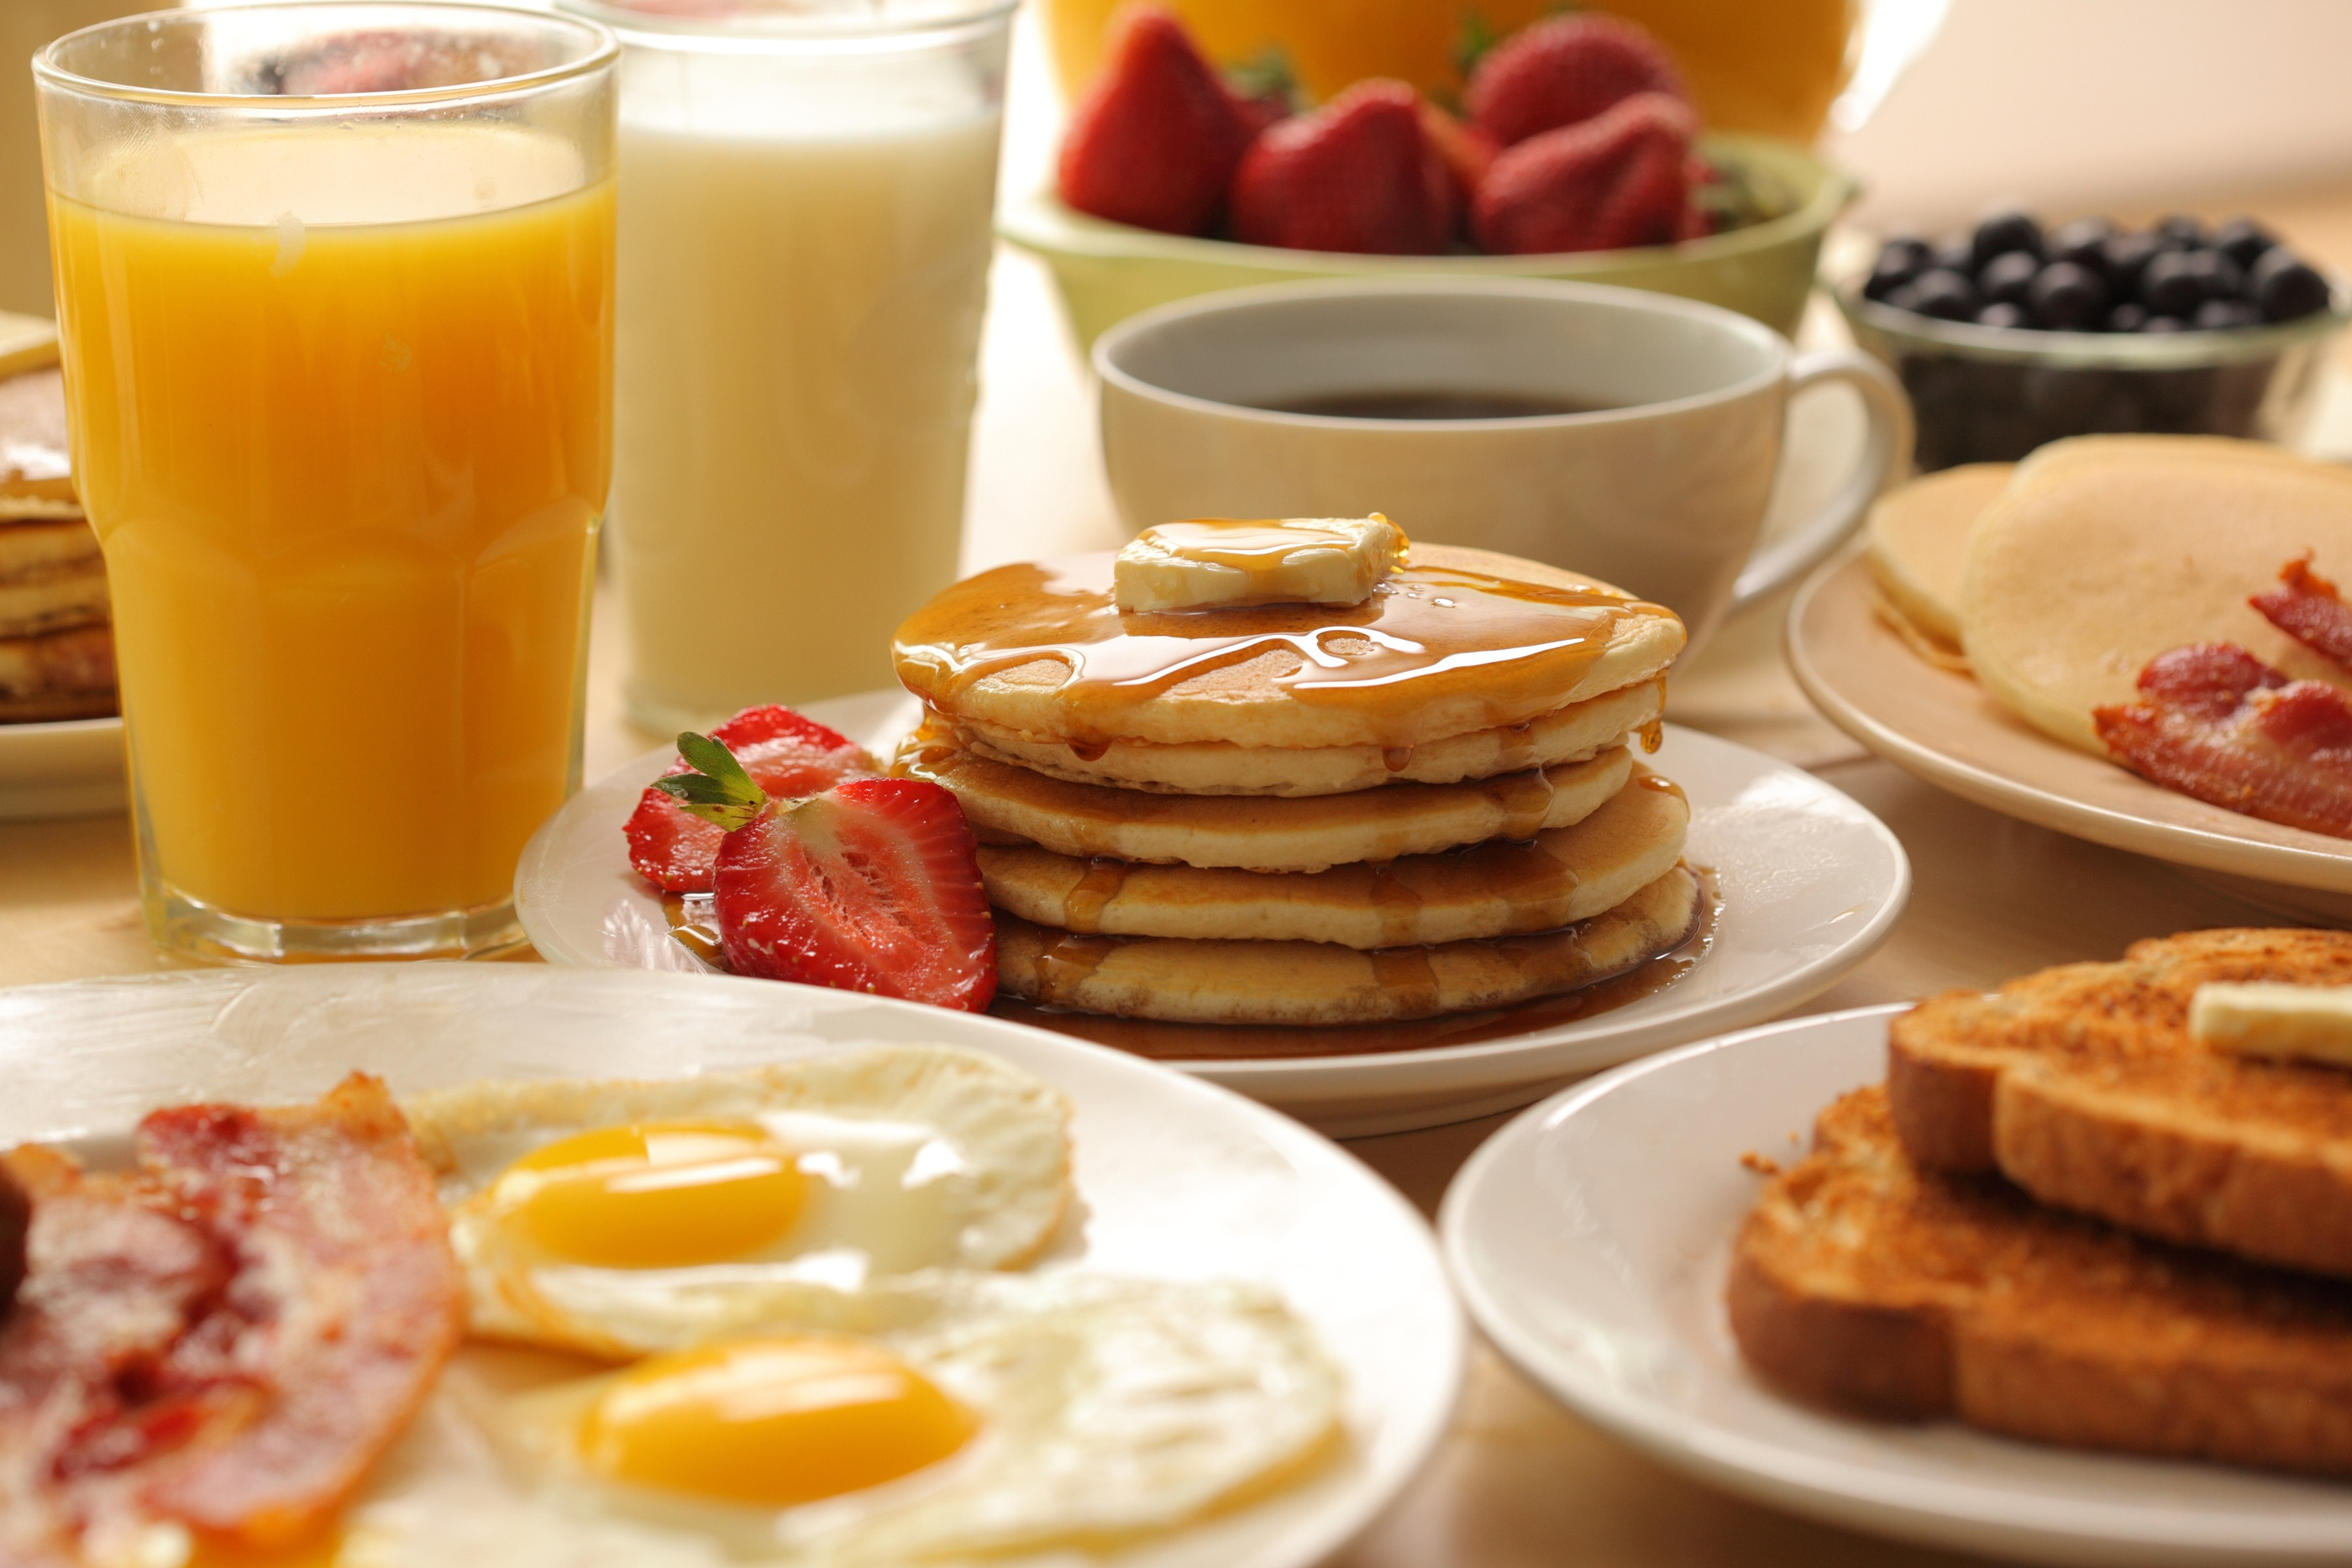 bigstock-Breakfast-foods-14088398.jpg